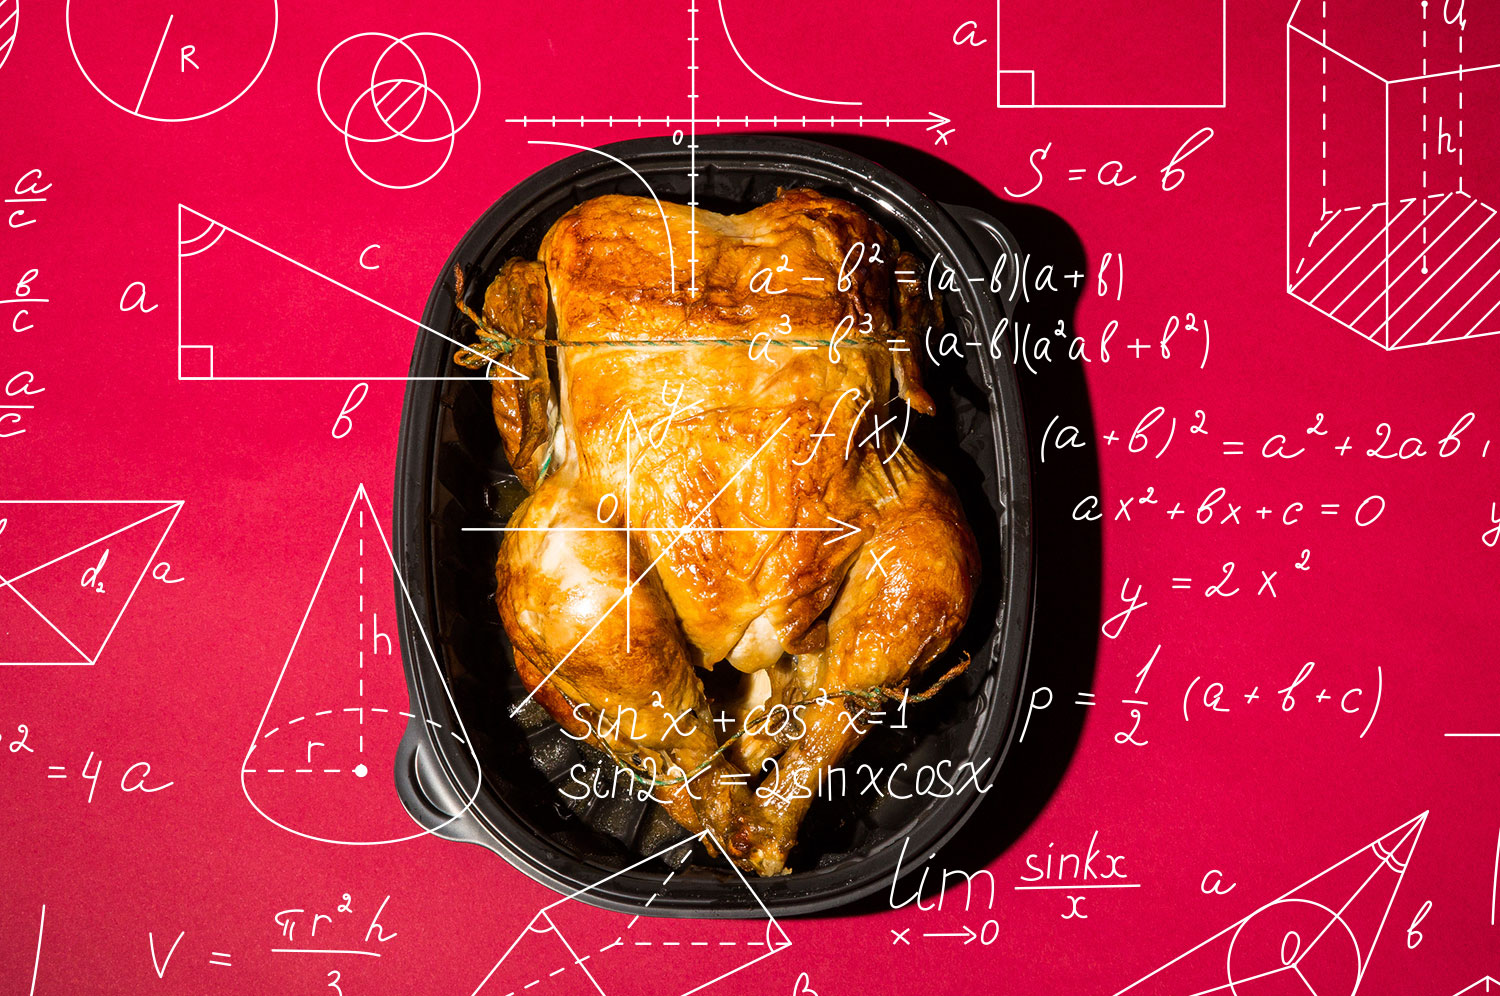 A rotisserie chicken in its black plastic container, underneath mathematical equations in white.